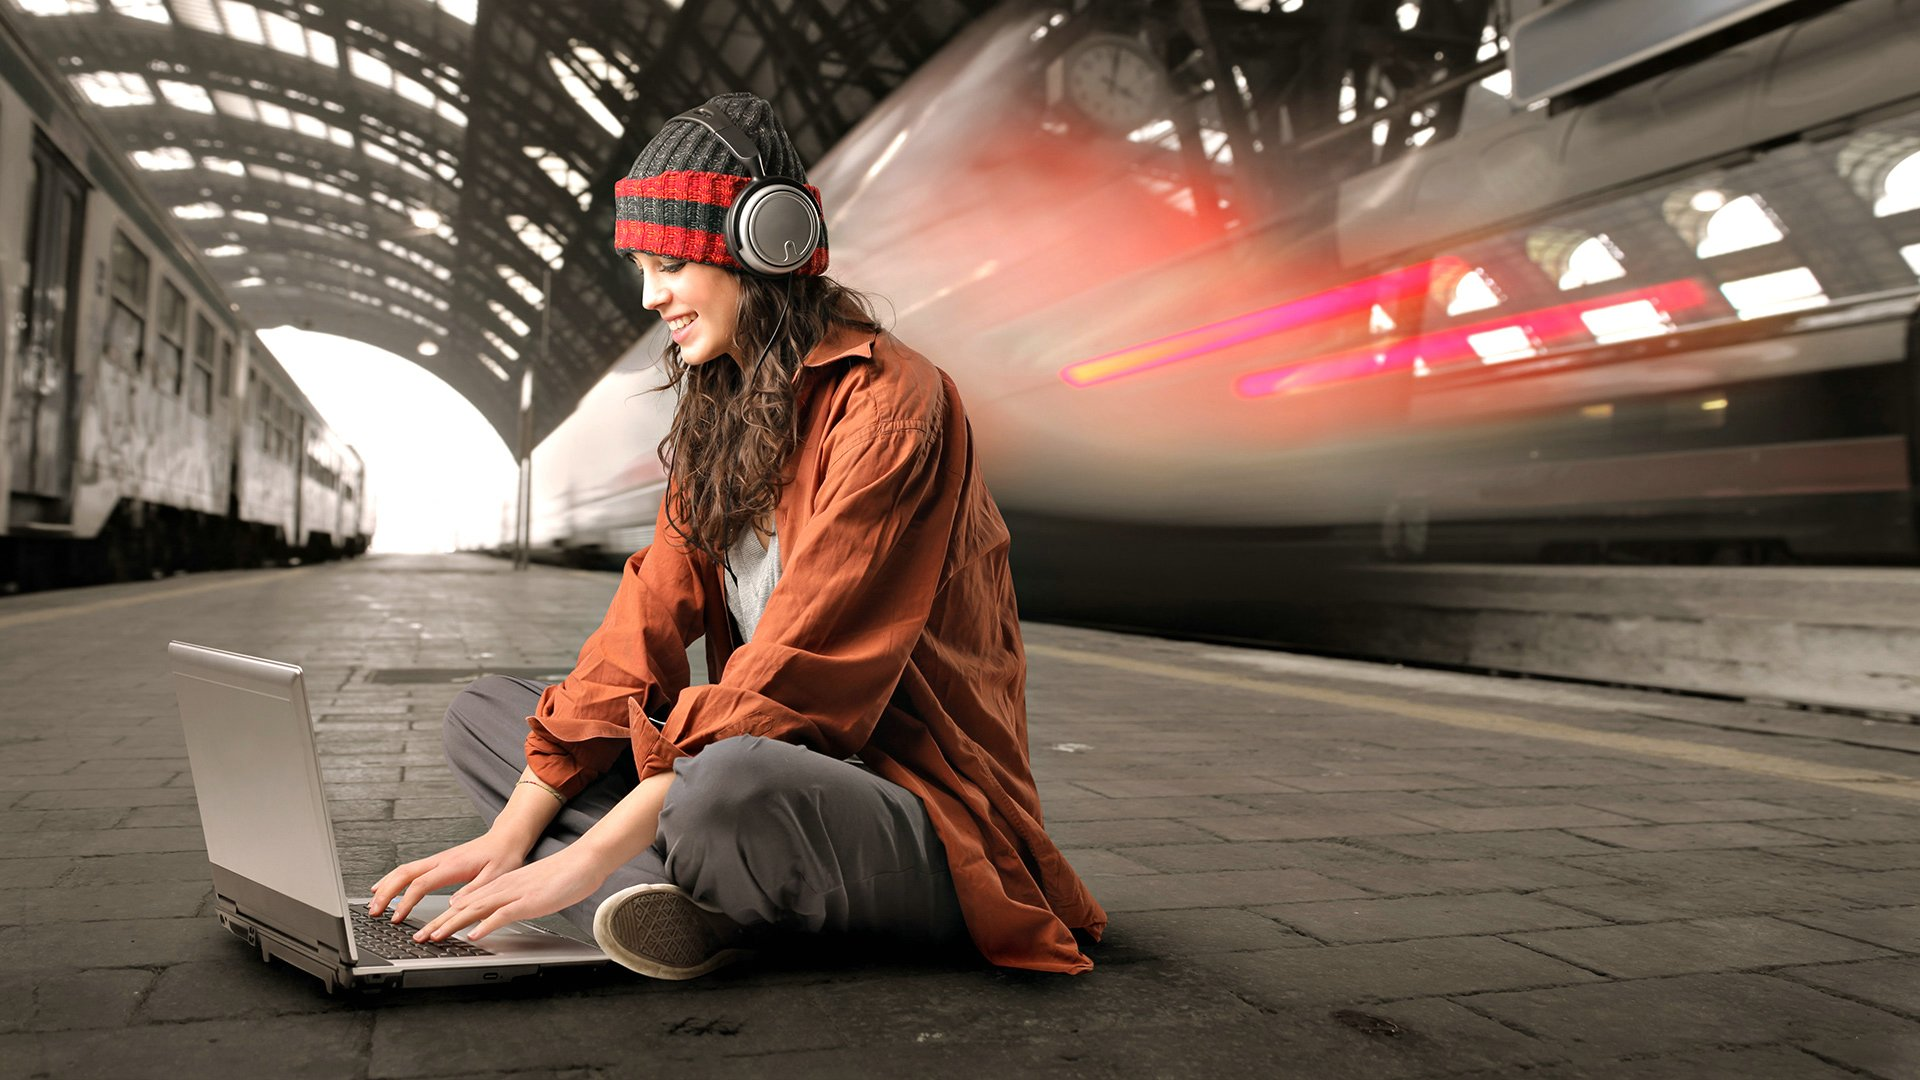 girl, a laptop, headphones, platform, station